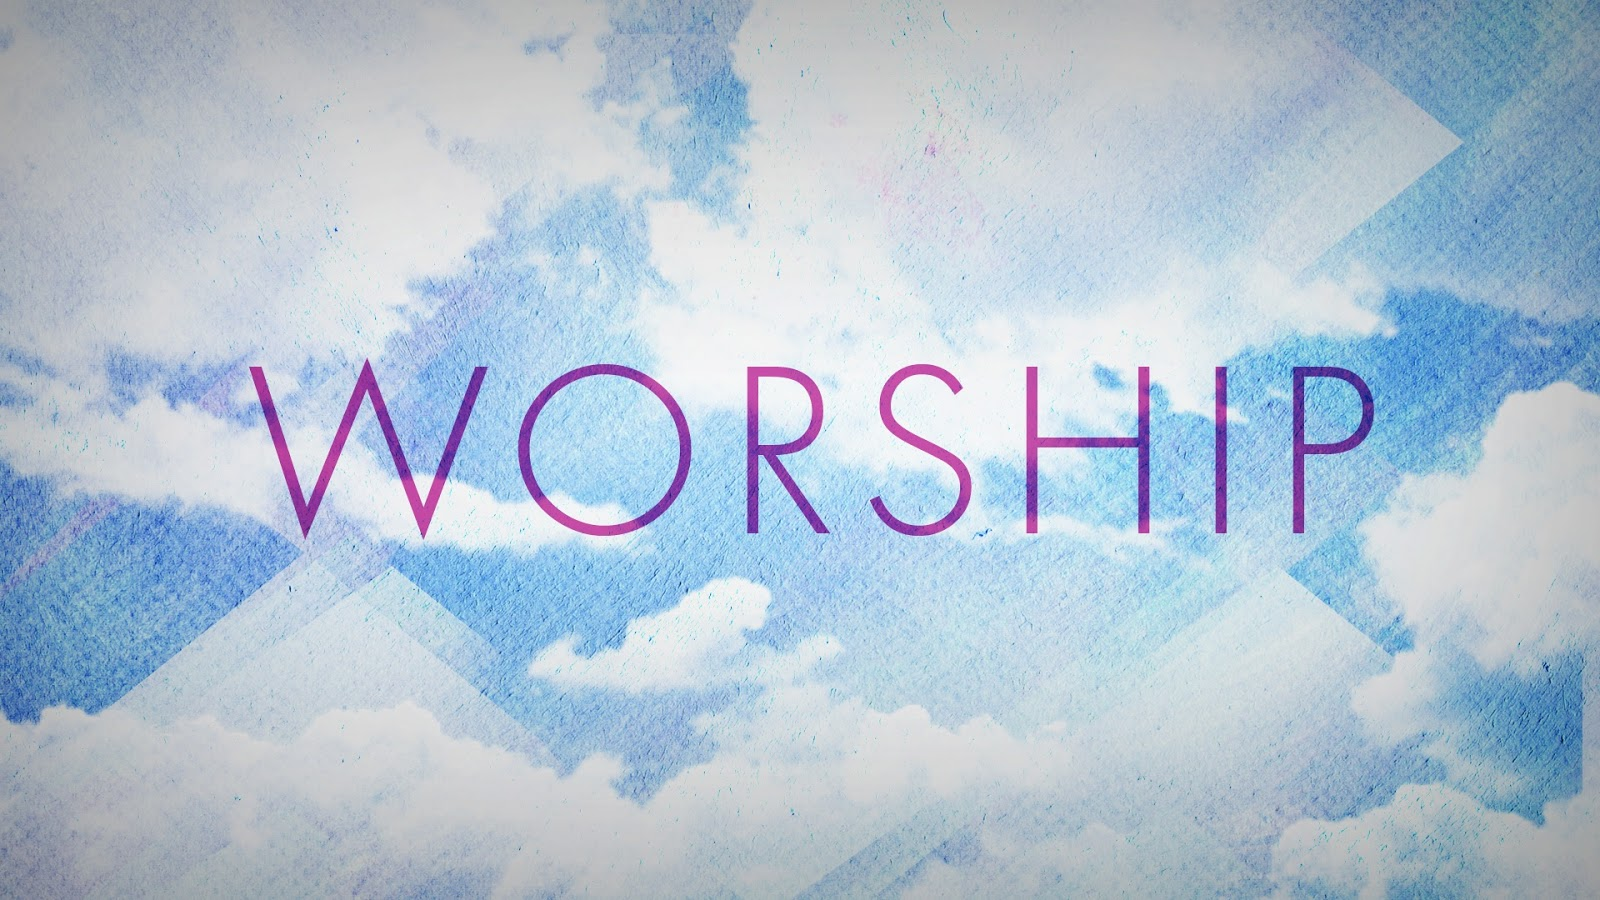 Worship Service Worship service evaluations